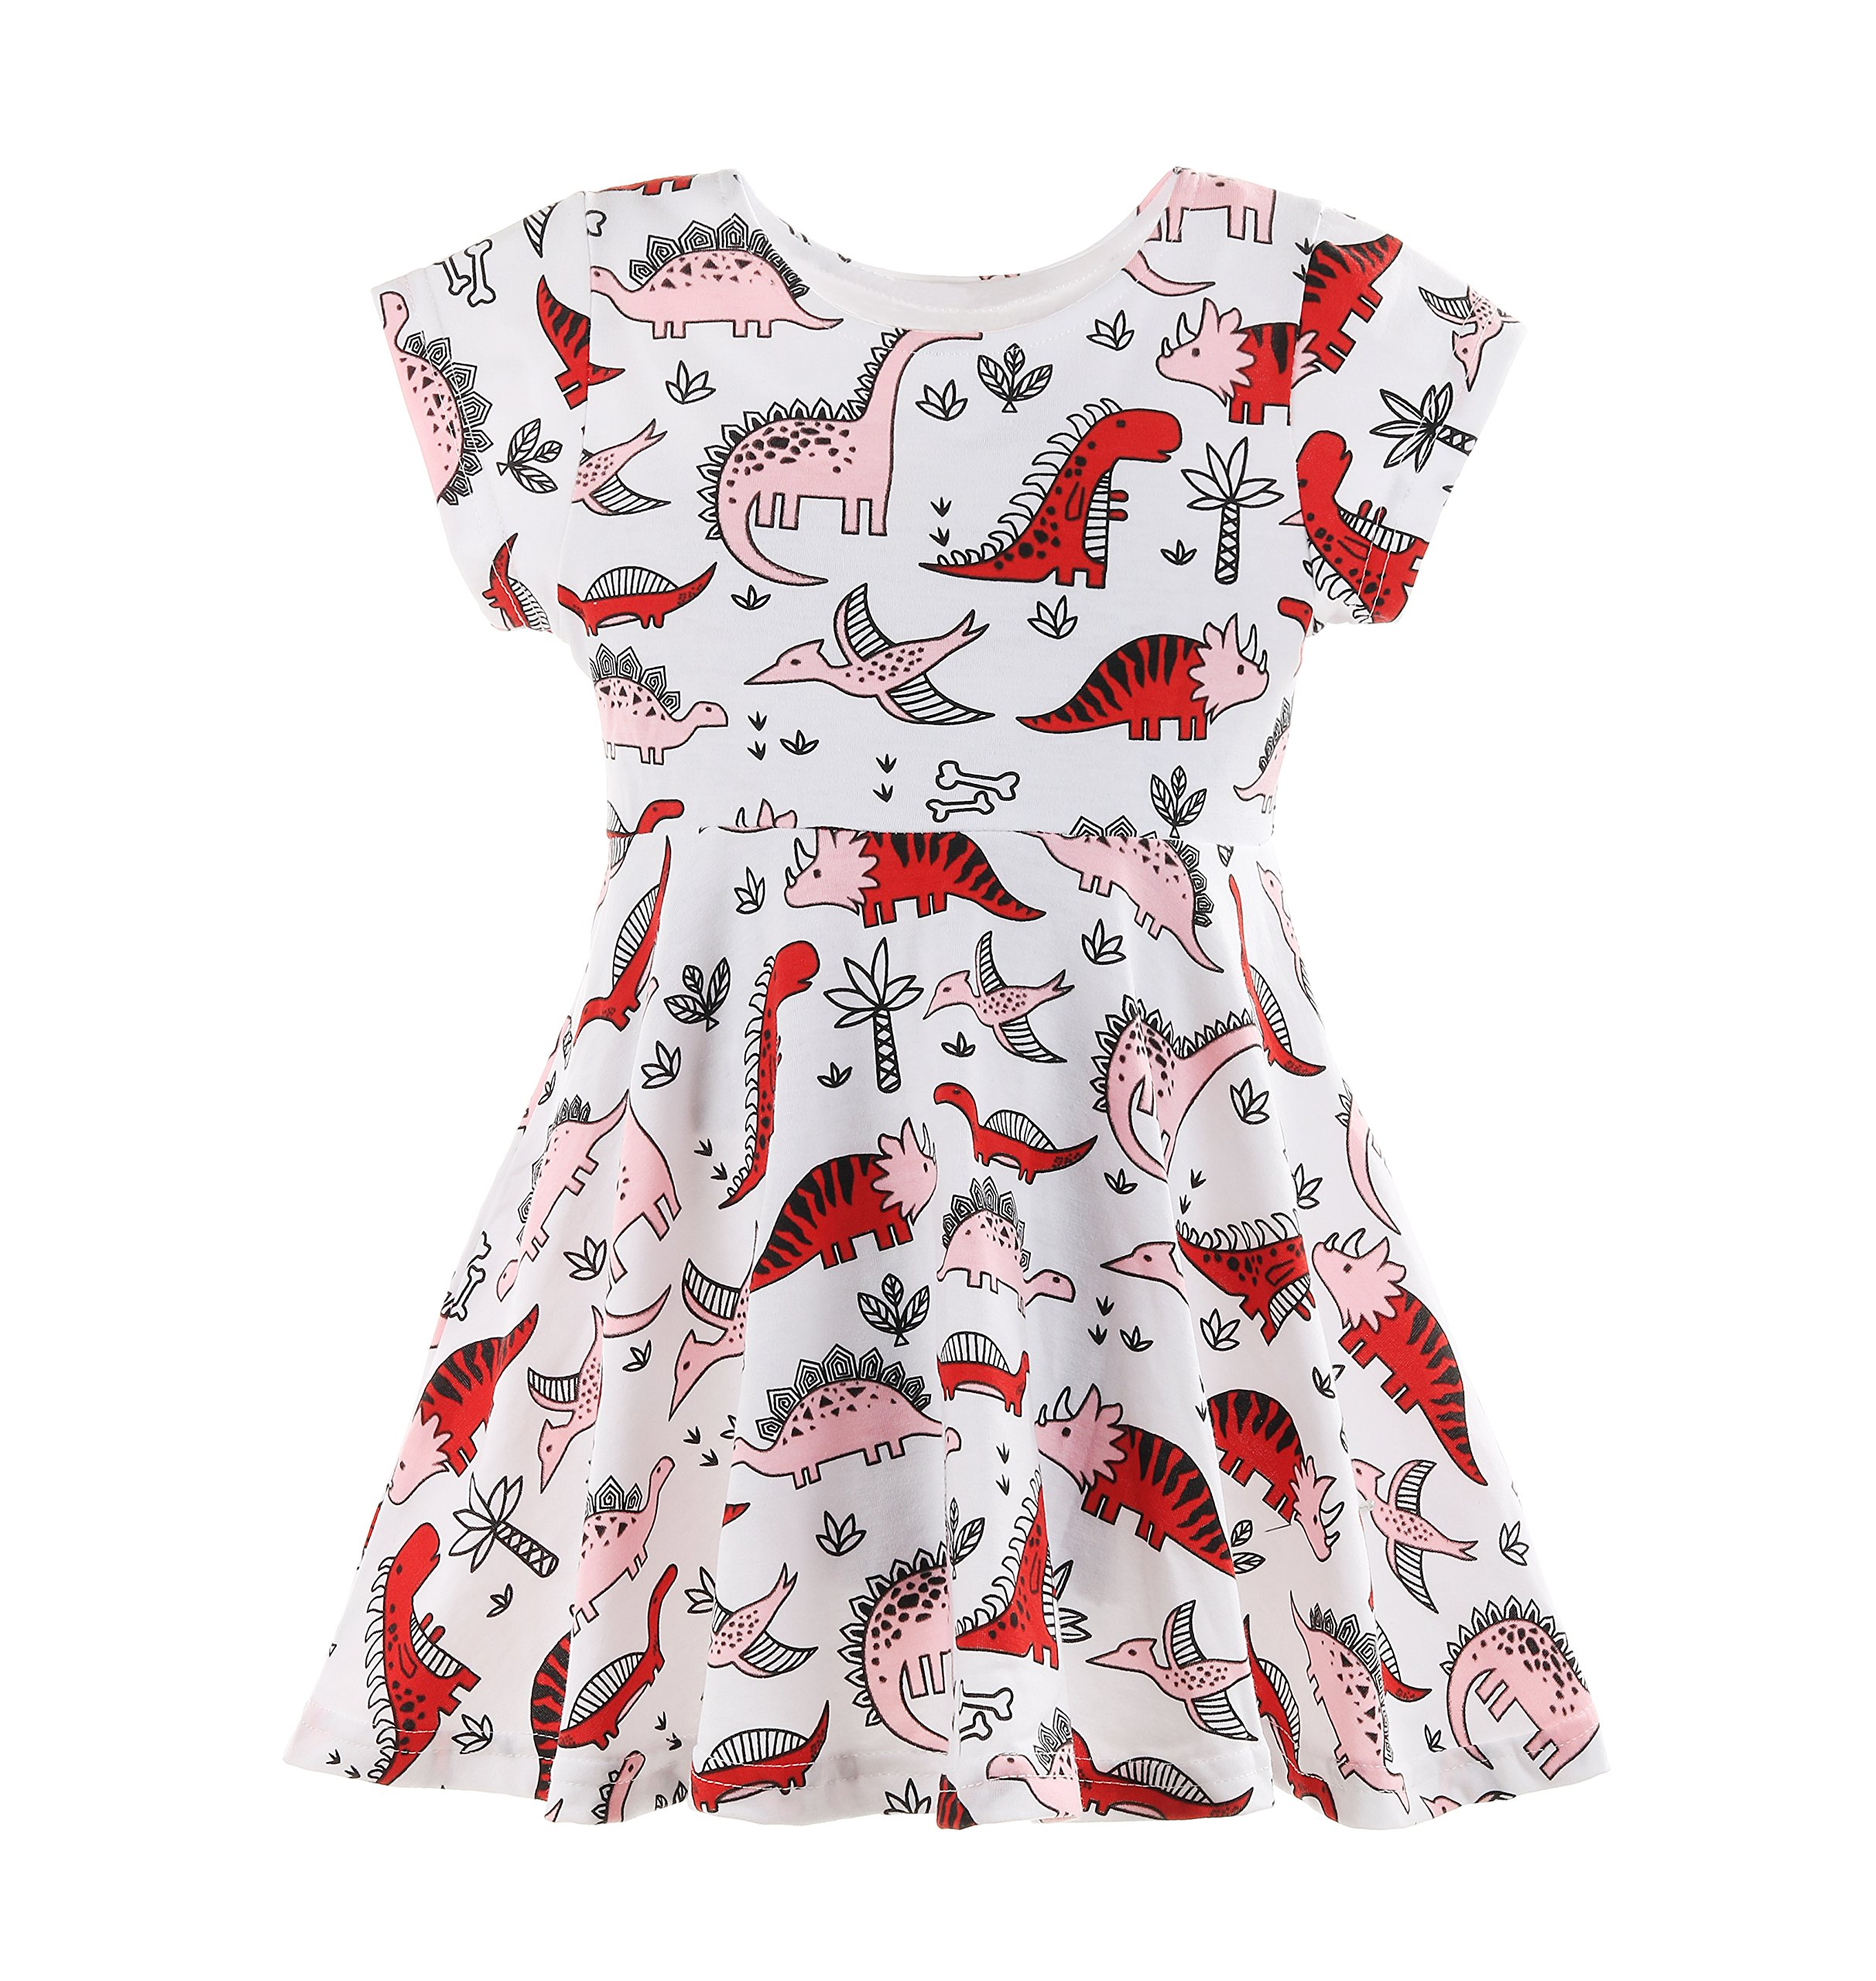 Fozerofo Baby Girl Summer Dinosaurs Print Dress Short Sleeve Casual Skirt Outfit